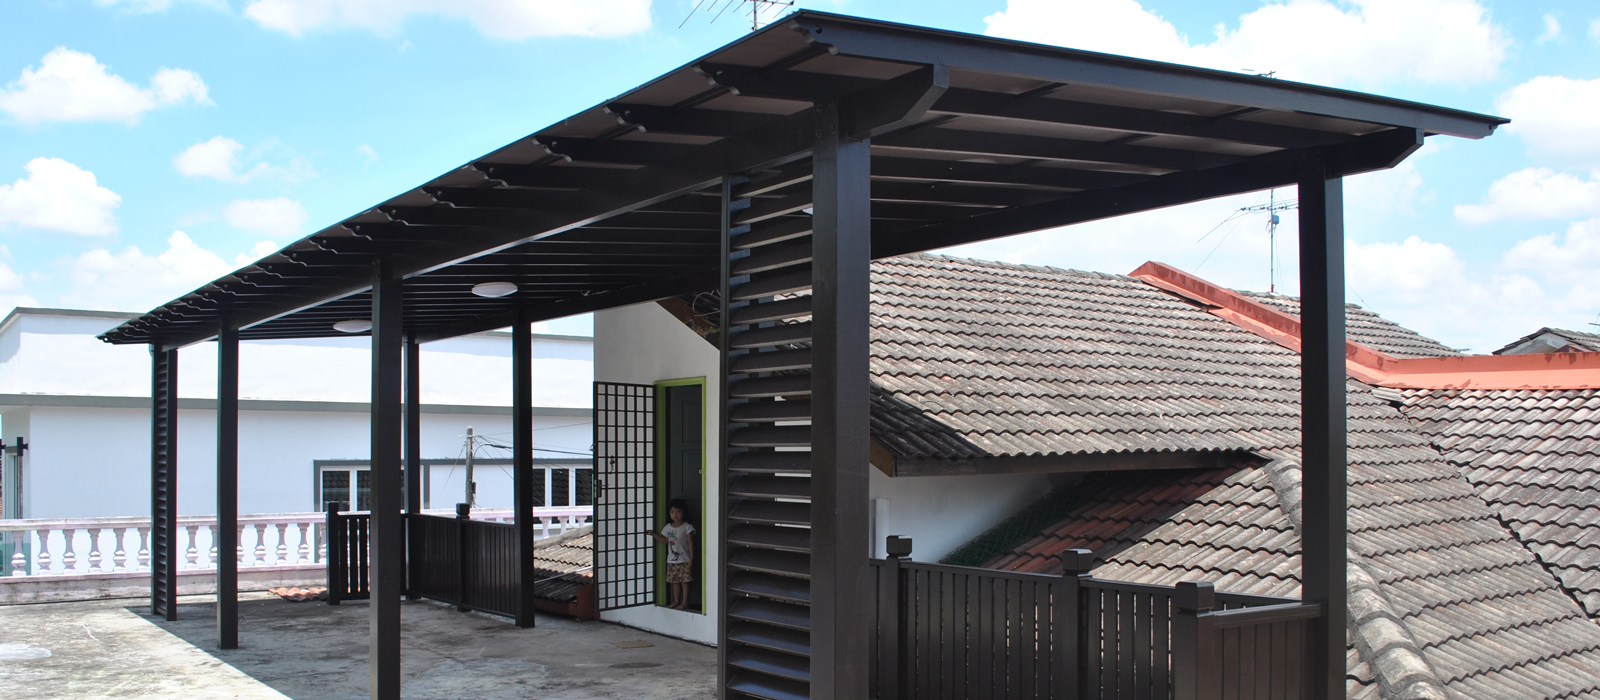 Roofing Tiles Malaysia,Polycarbonate Awning,Glass Skylight